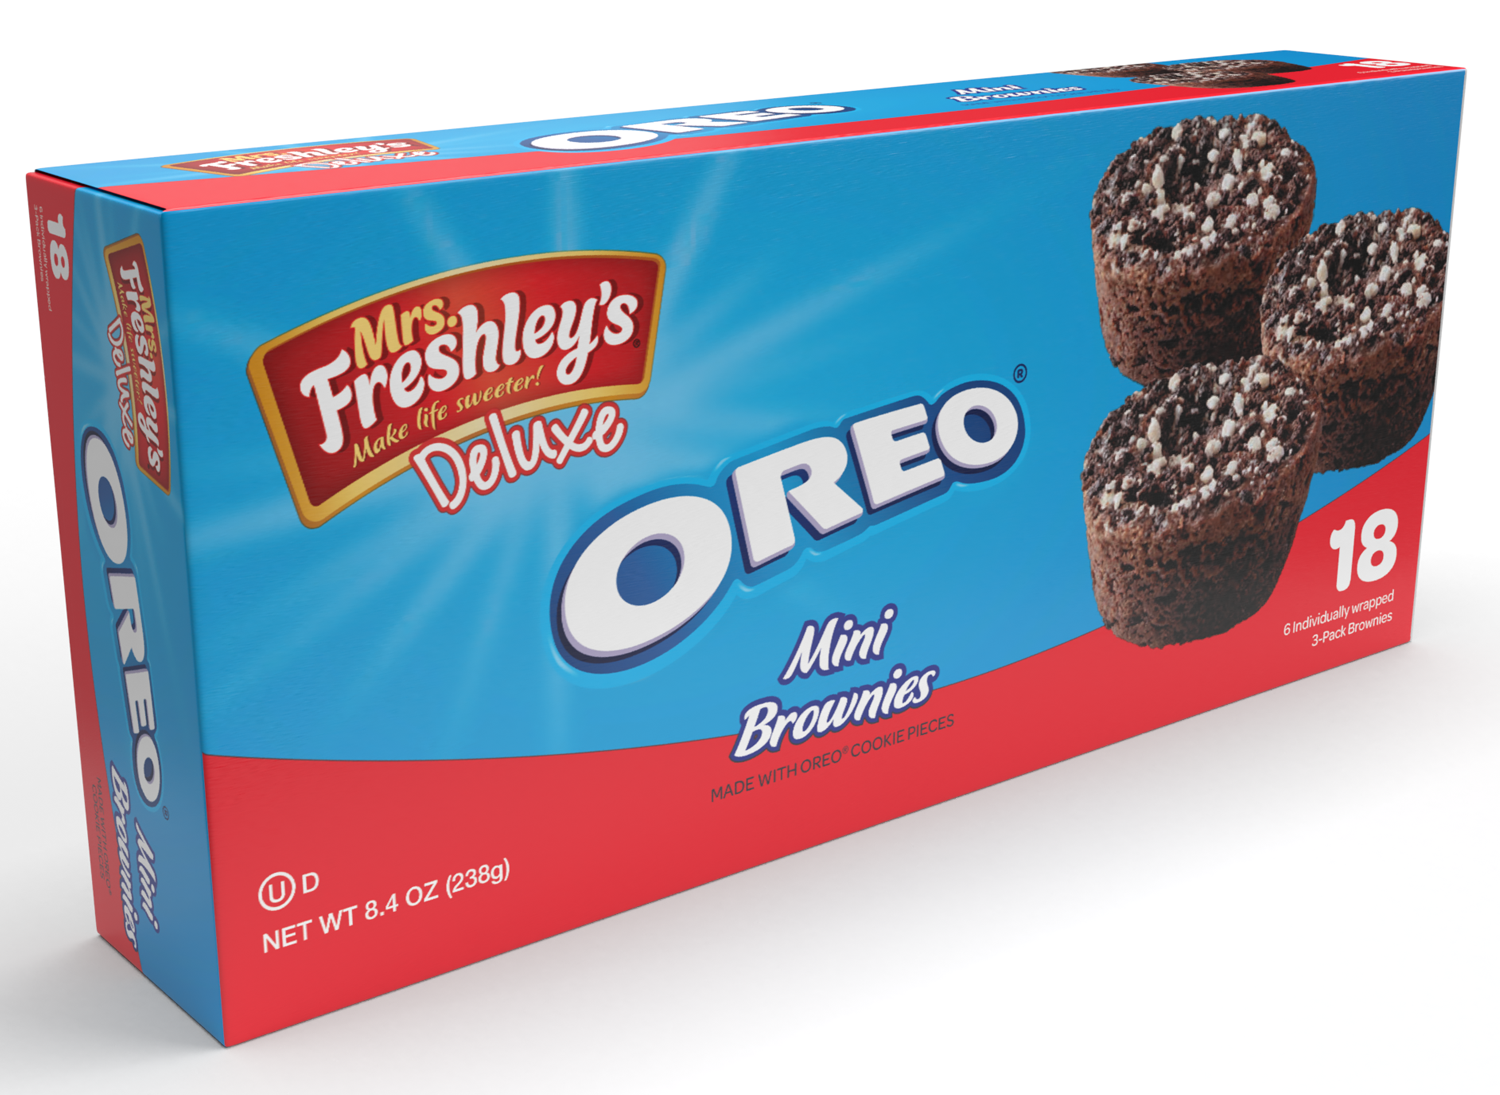 Mrs. Freshley's partners with Hershey's, Reese's, and Oreo for three new treats 14